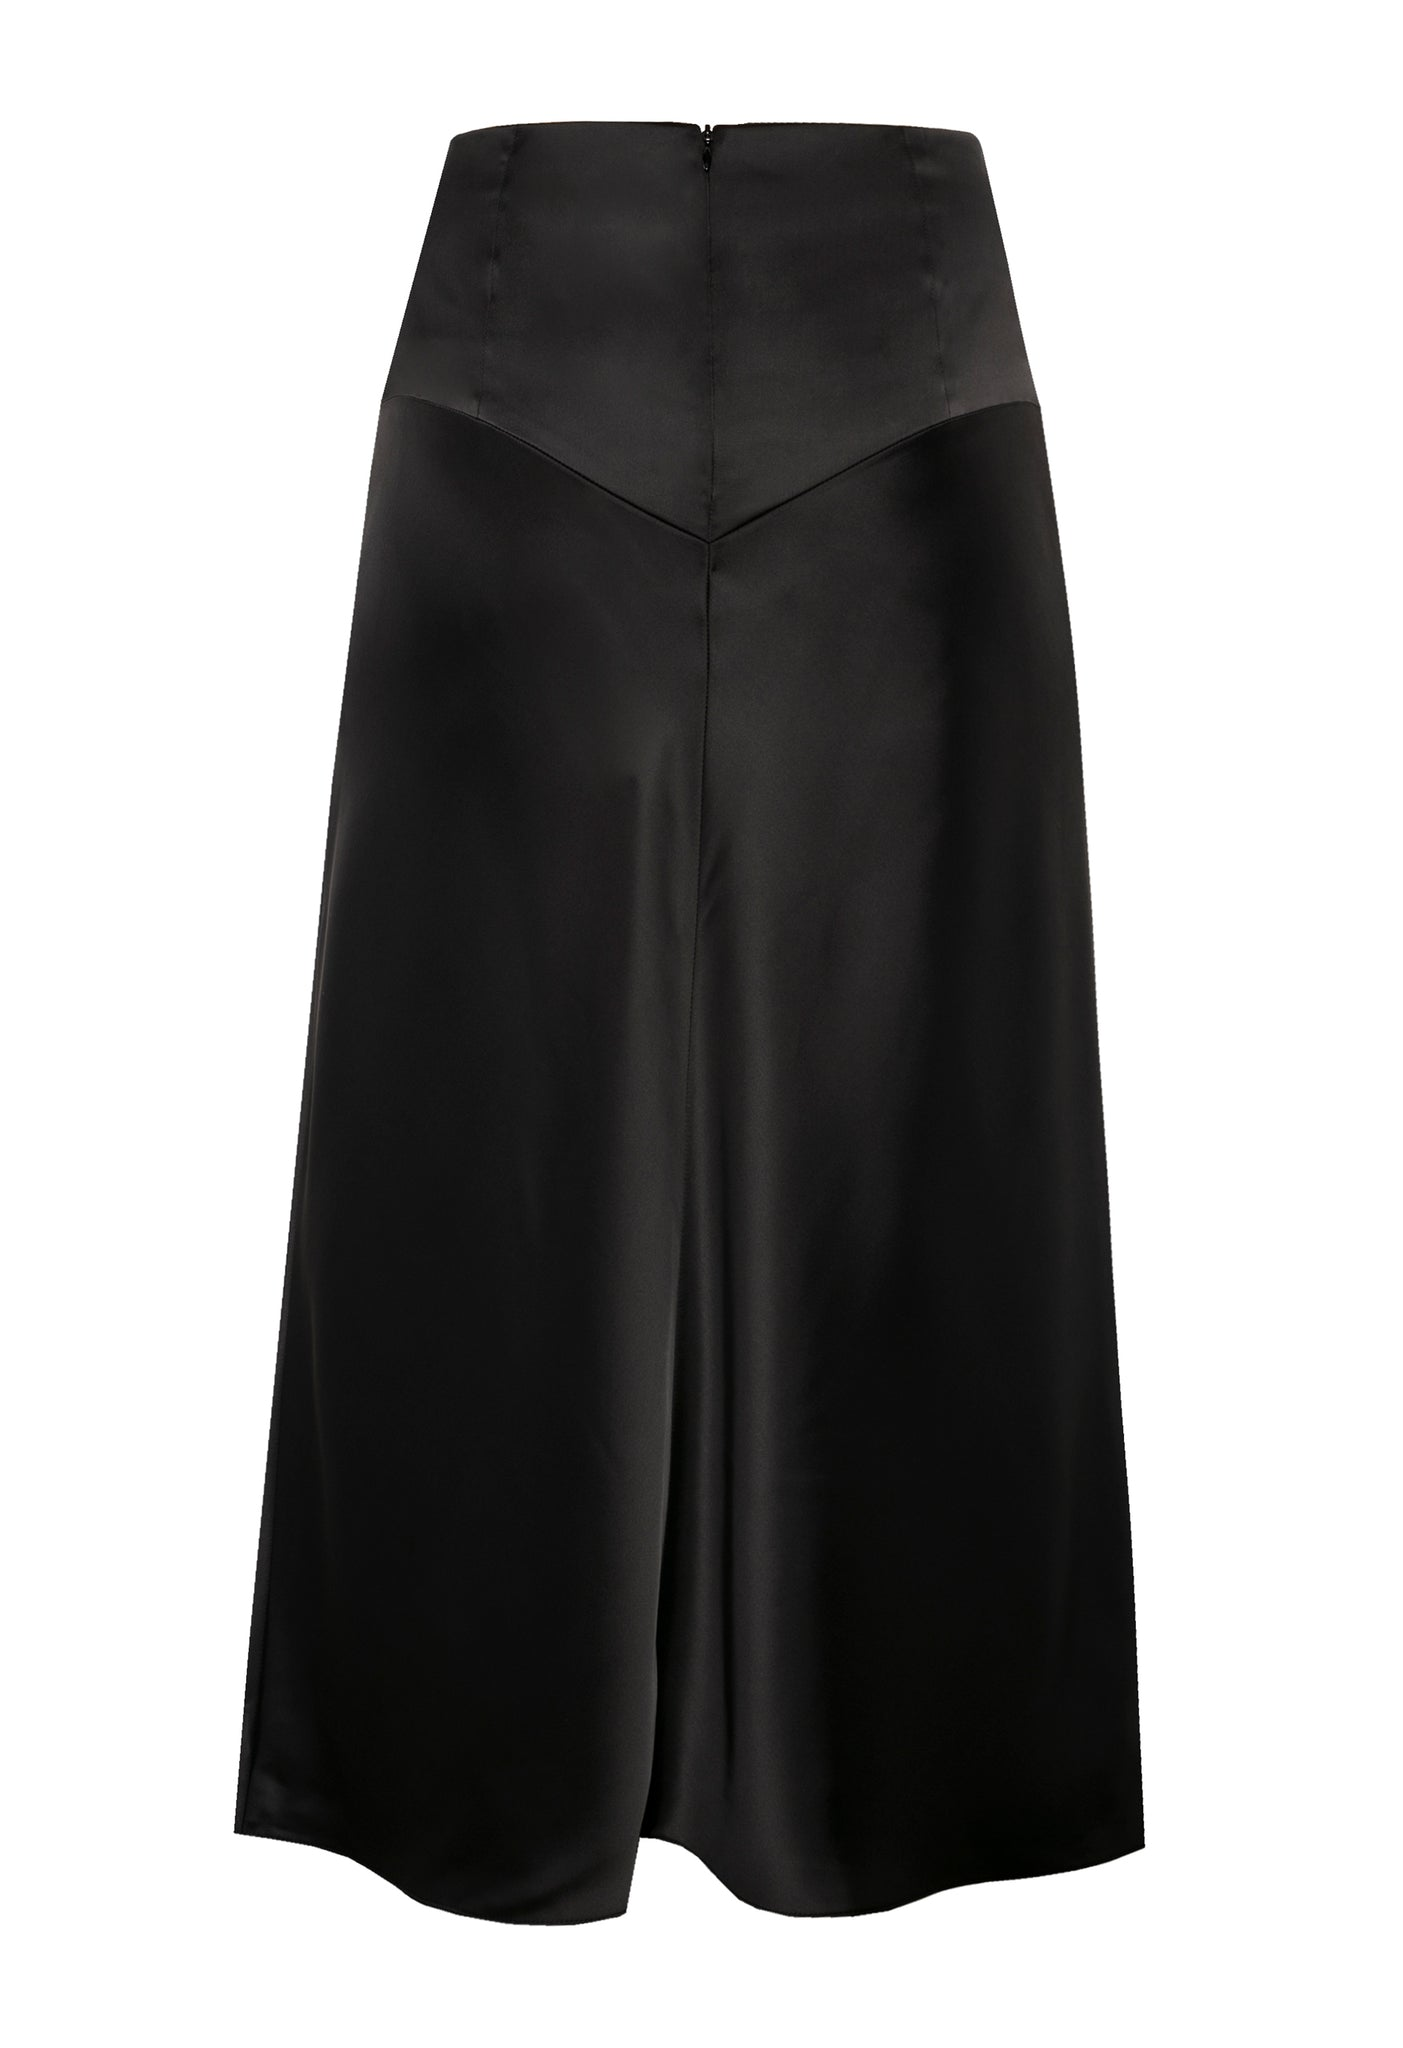 'Black coffee' skirt, back view.